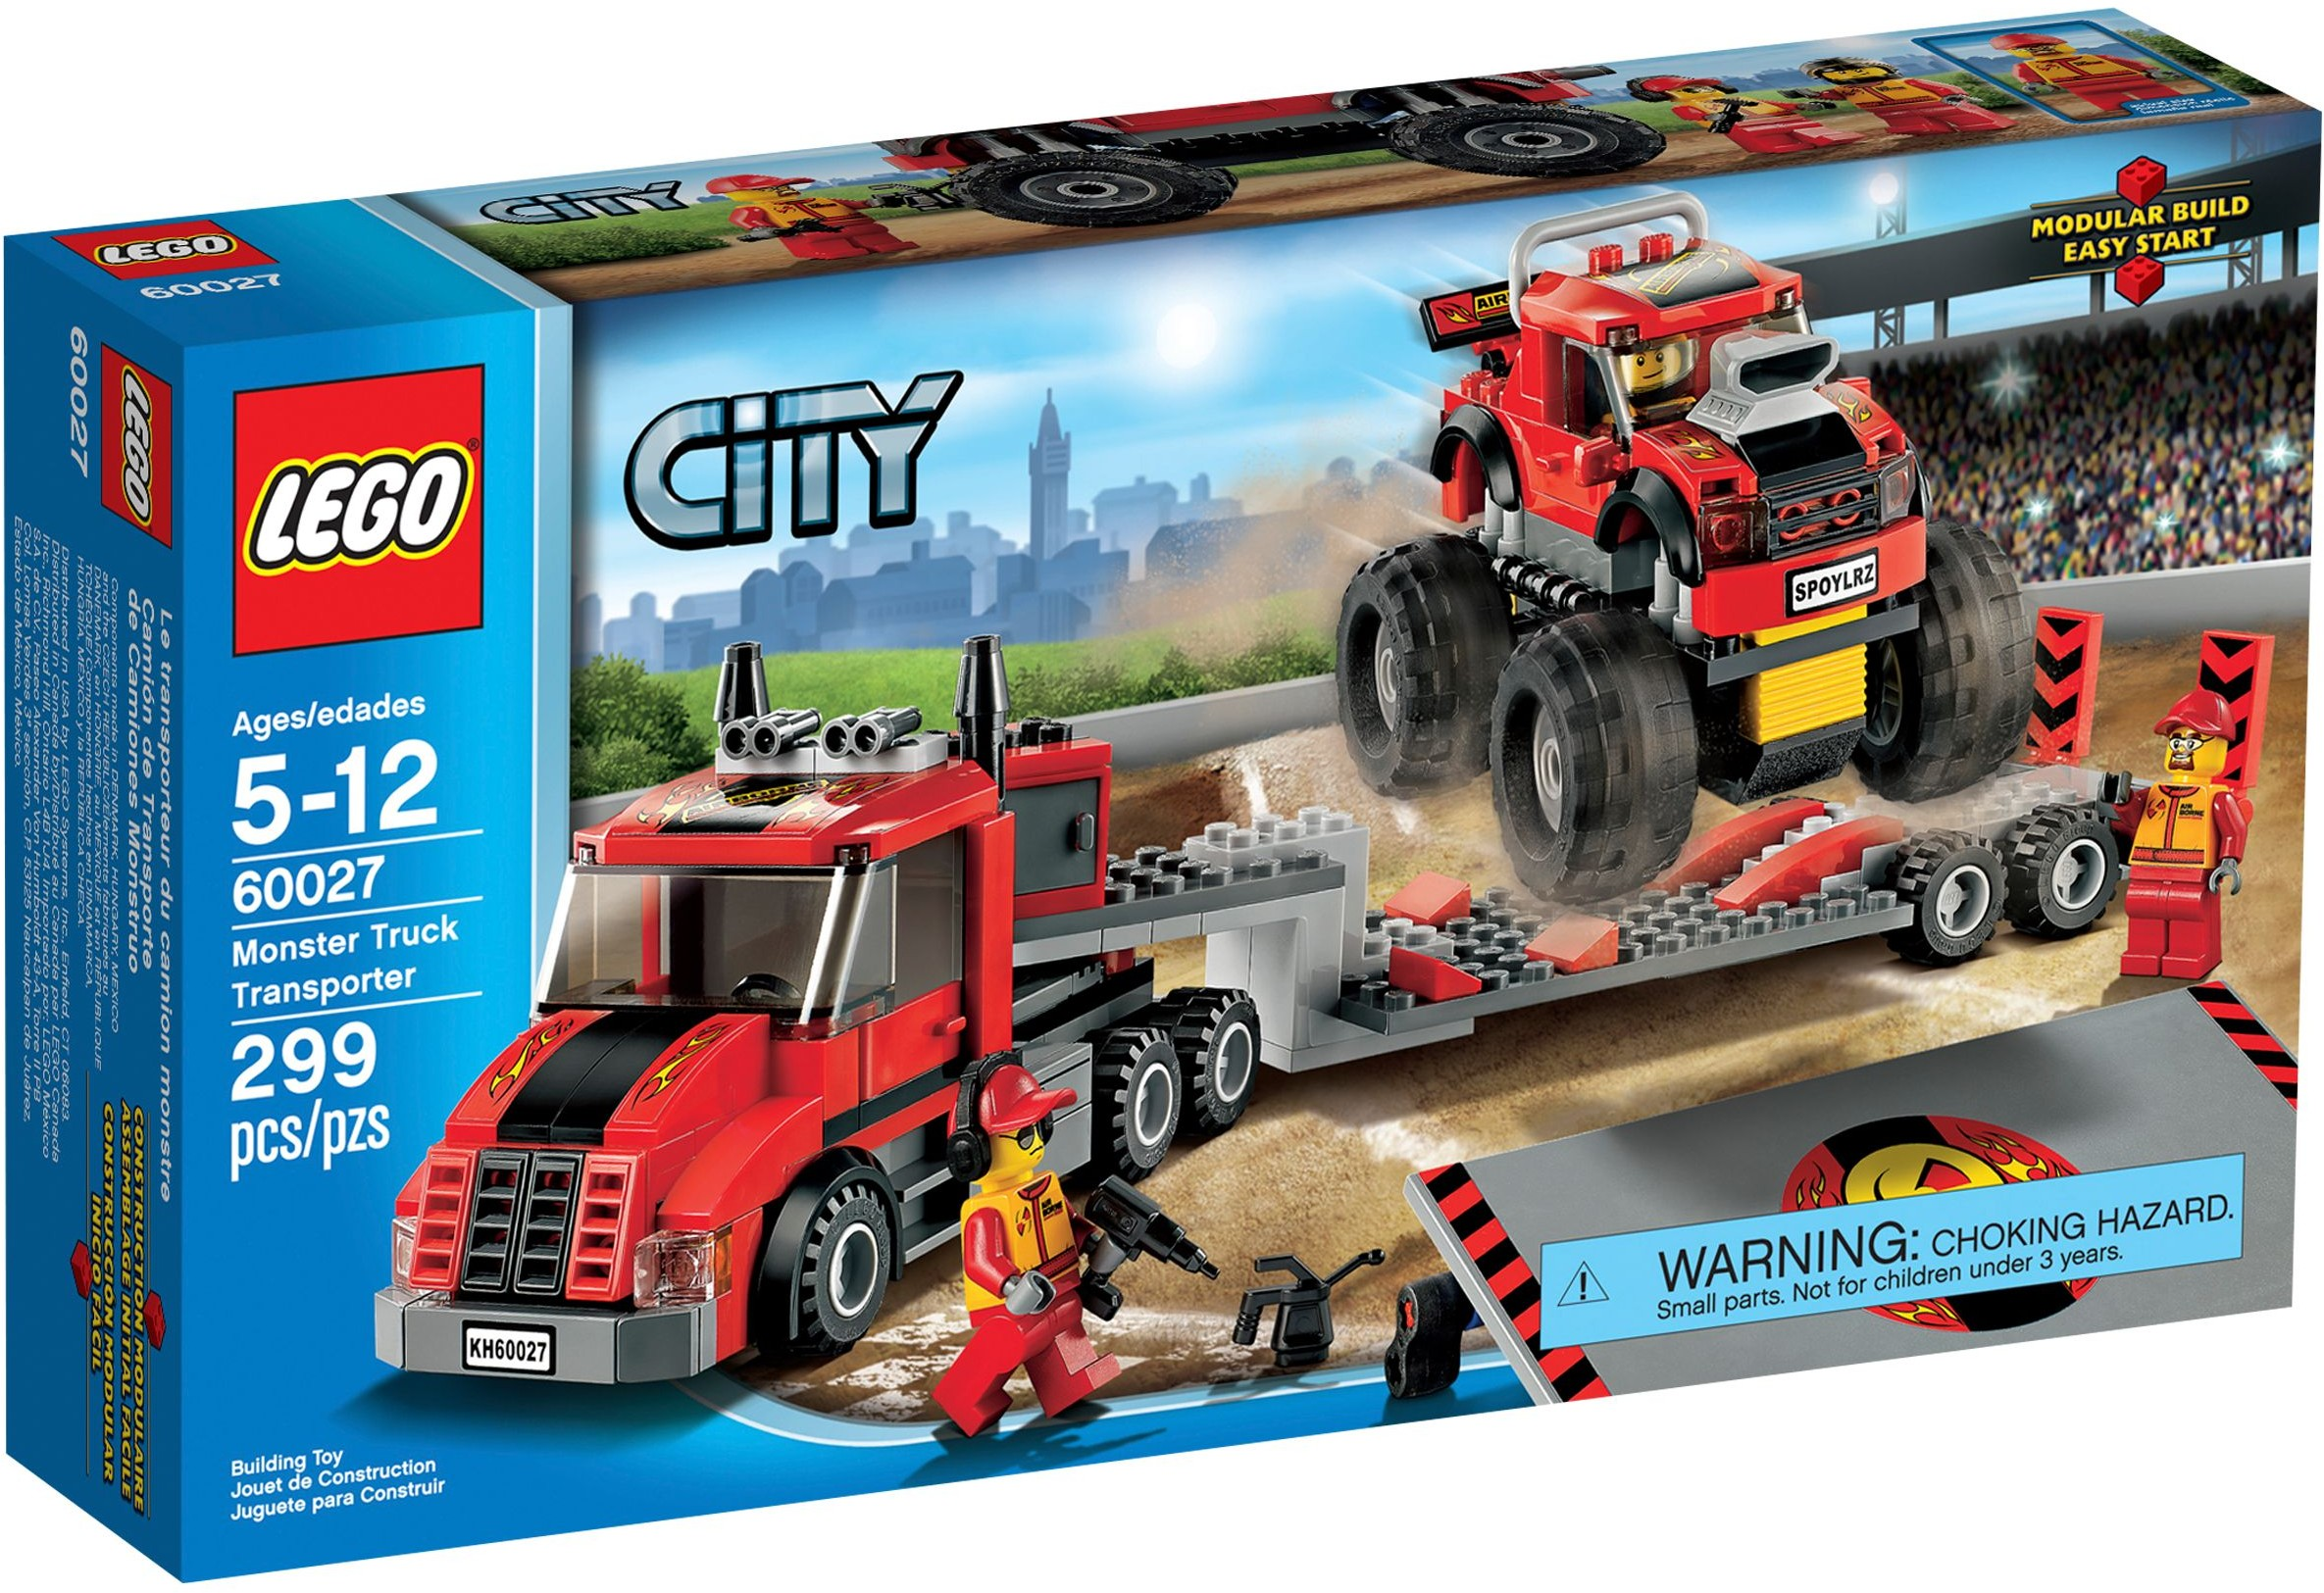 Lego city 60027 pas cher le camion de transport du monster truck - Lego city police camion ...